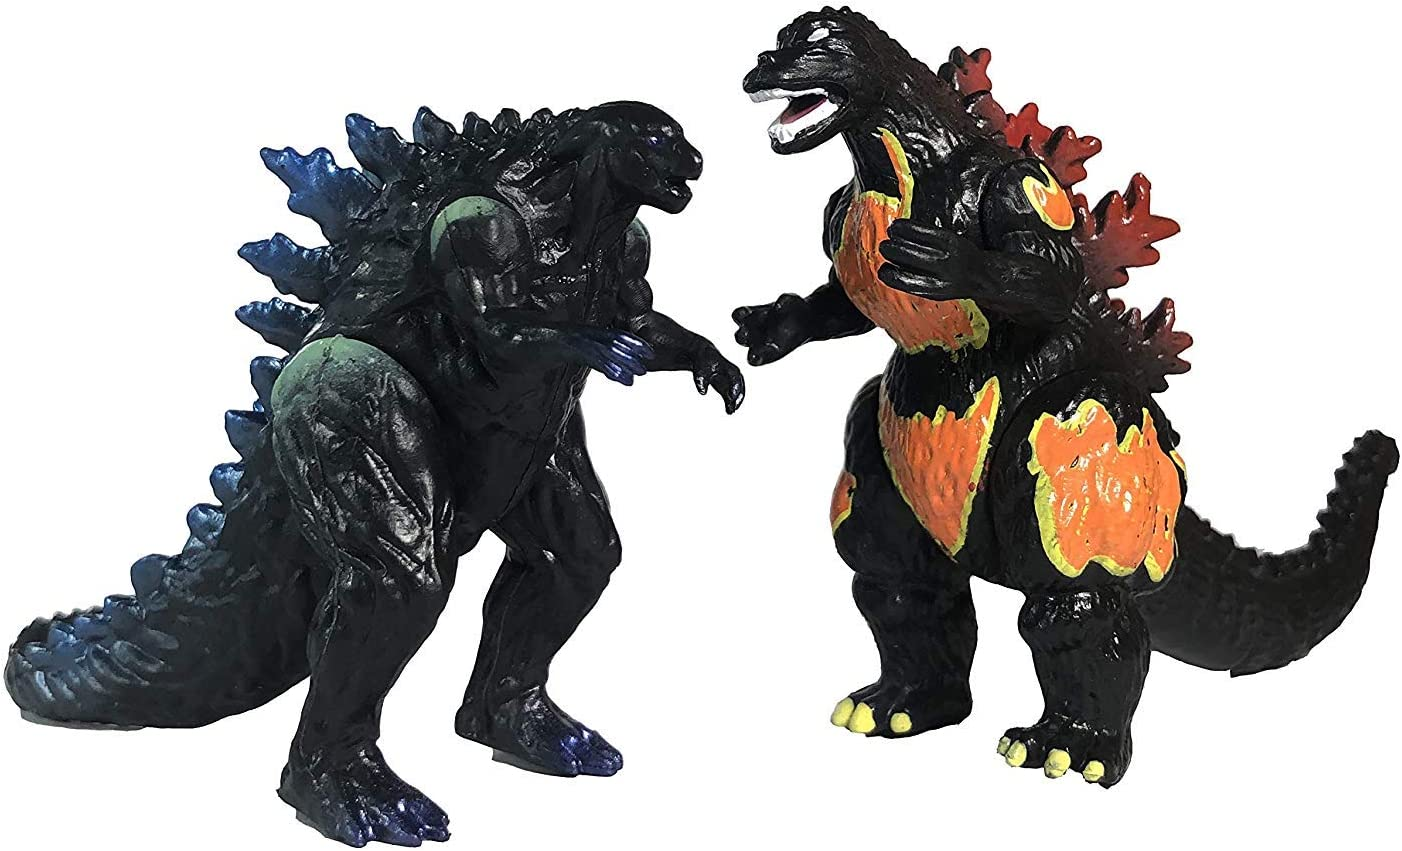 Set of 10 Godzilla Toys Movable Joint Birthday Kids 2019 Action Figures Mothra Imago Burning Heisei Mecha Ghidorah King of the Monsters Pack Plastic Mini Dinosaur Playsets Cake Toppers Package